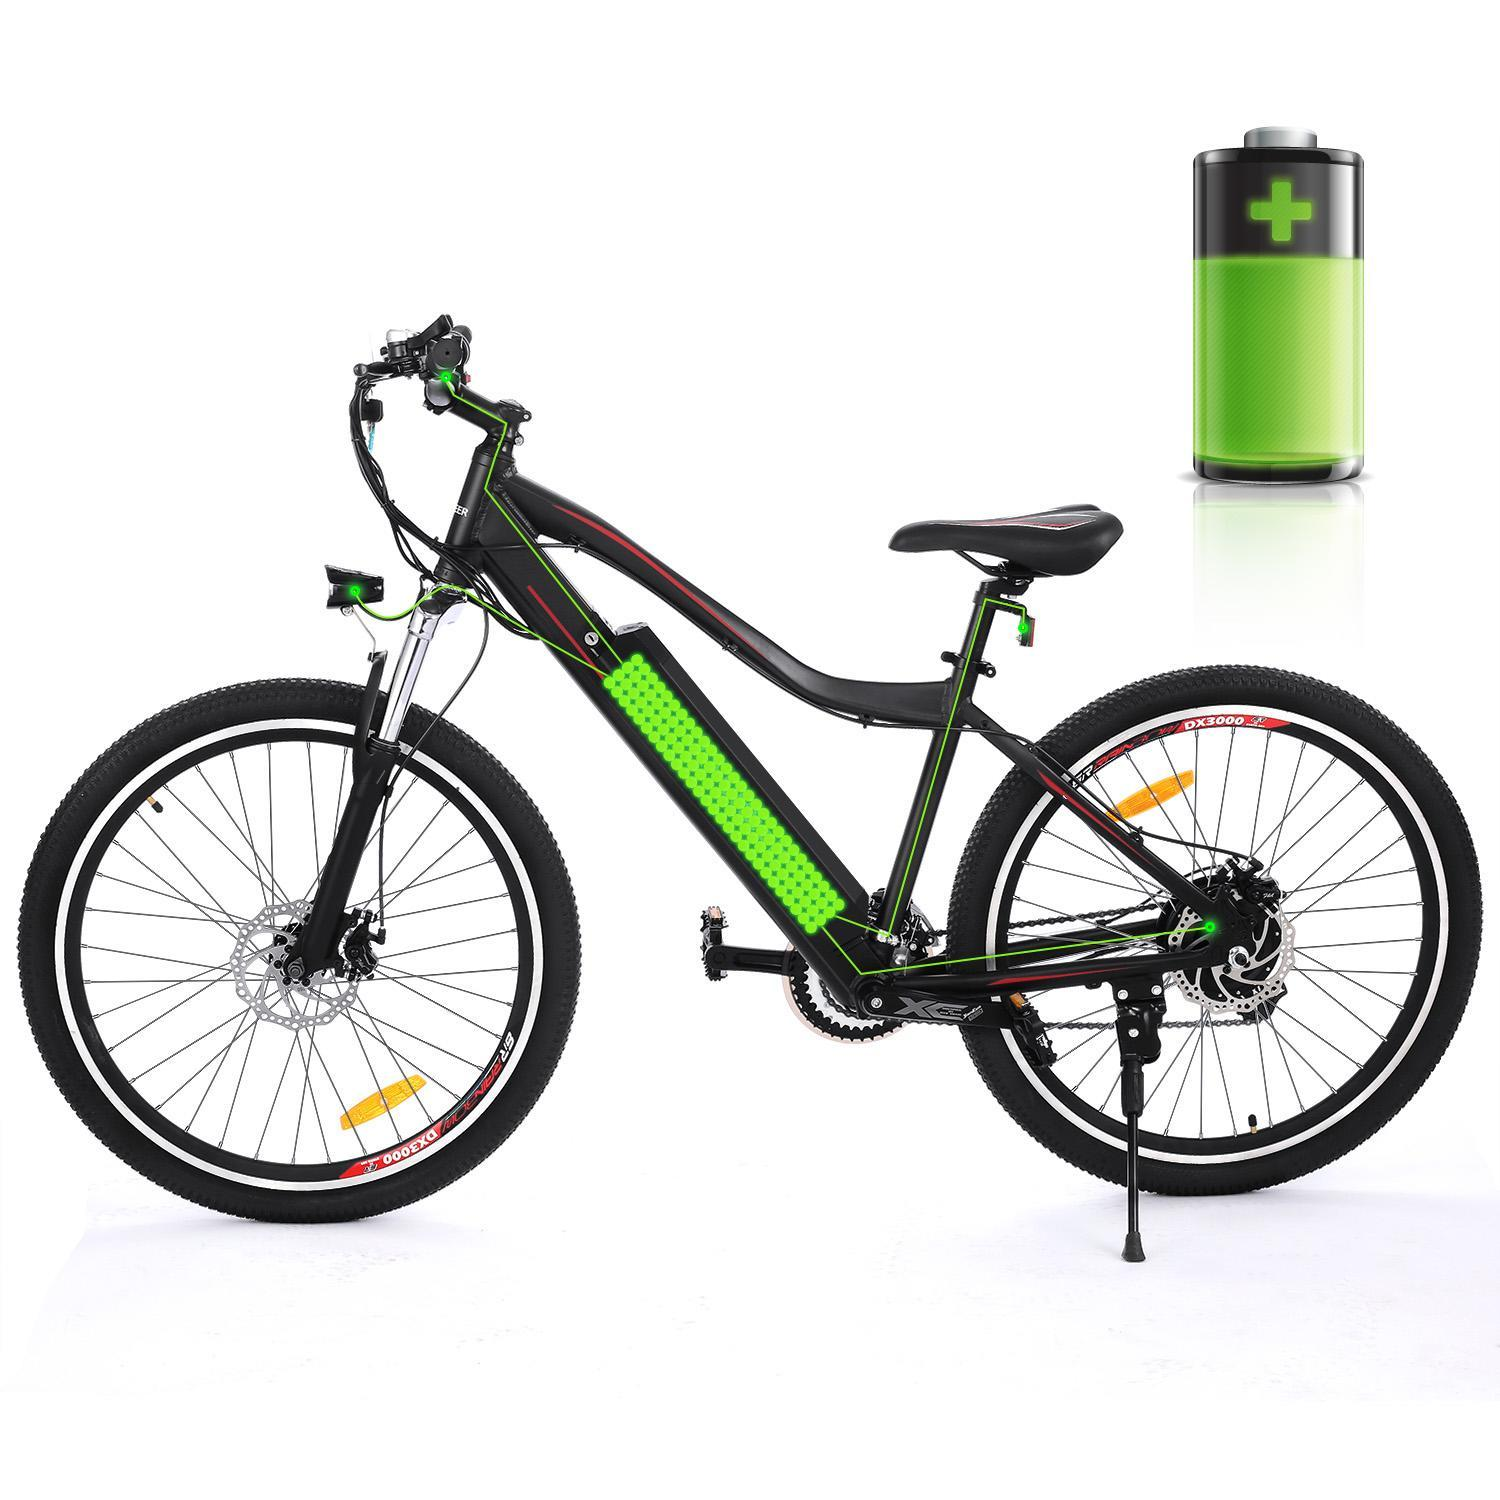 "26"" 36V  Electric Bike Mountain Bicycle Shimano 21 Speed with  Aluminum Alloy Frame &Lithium Battery 12A TPBY"